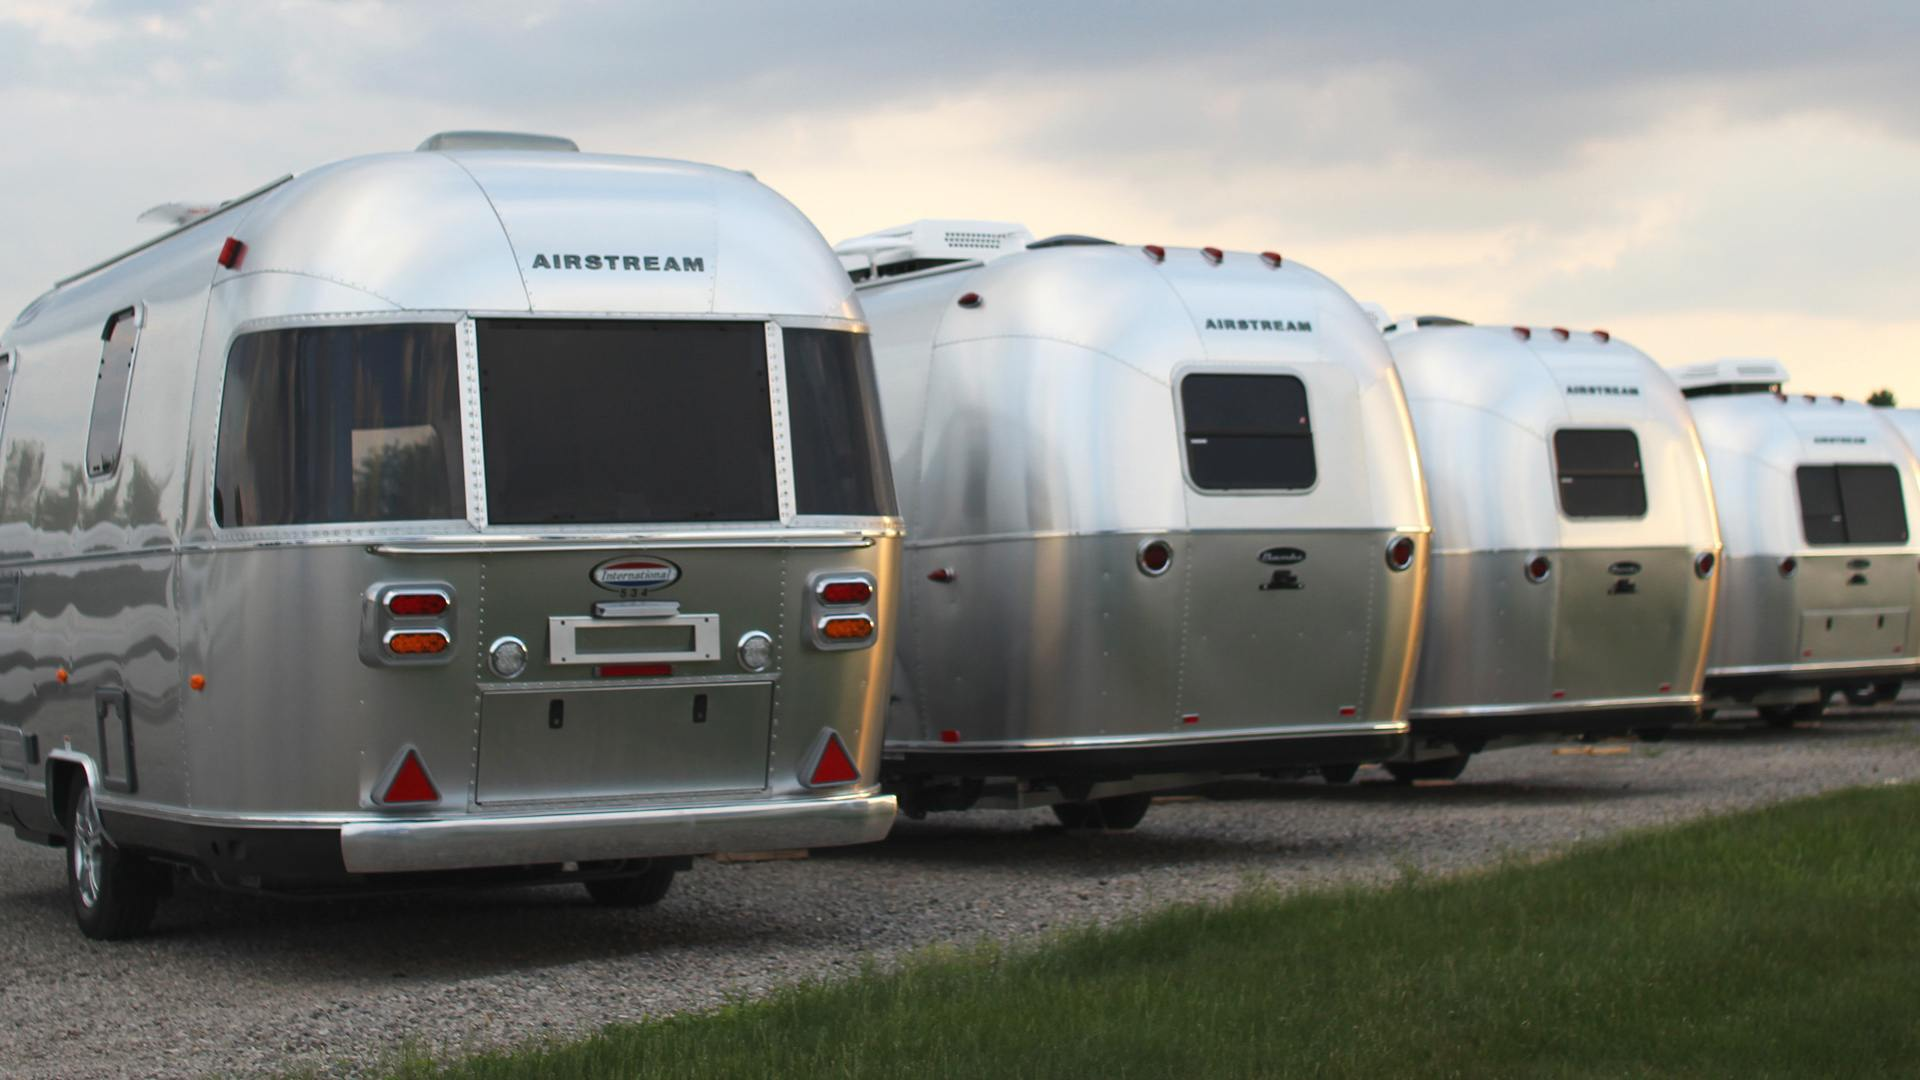 row of airstream trailers parked